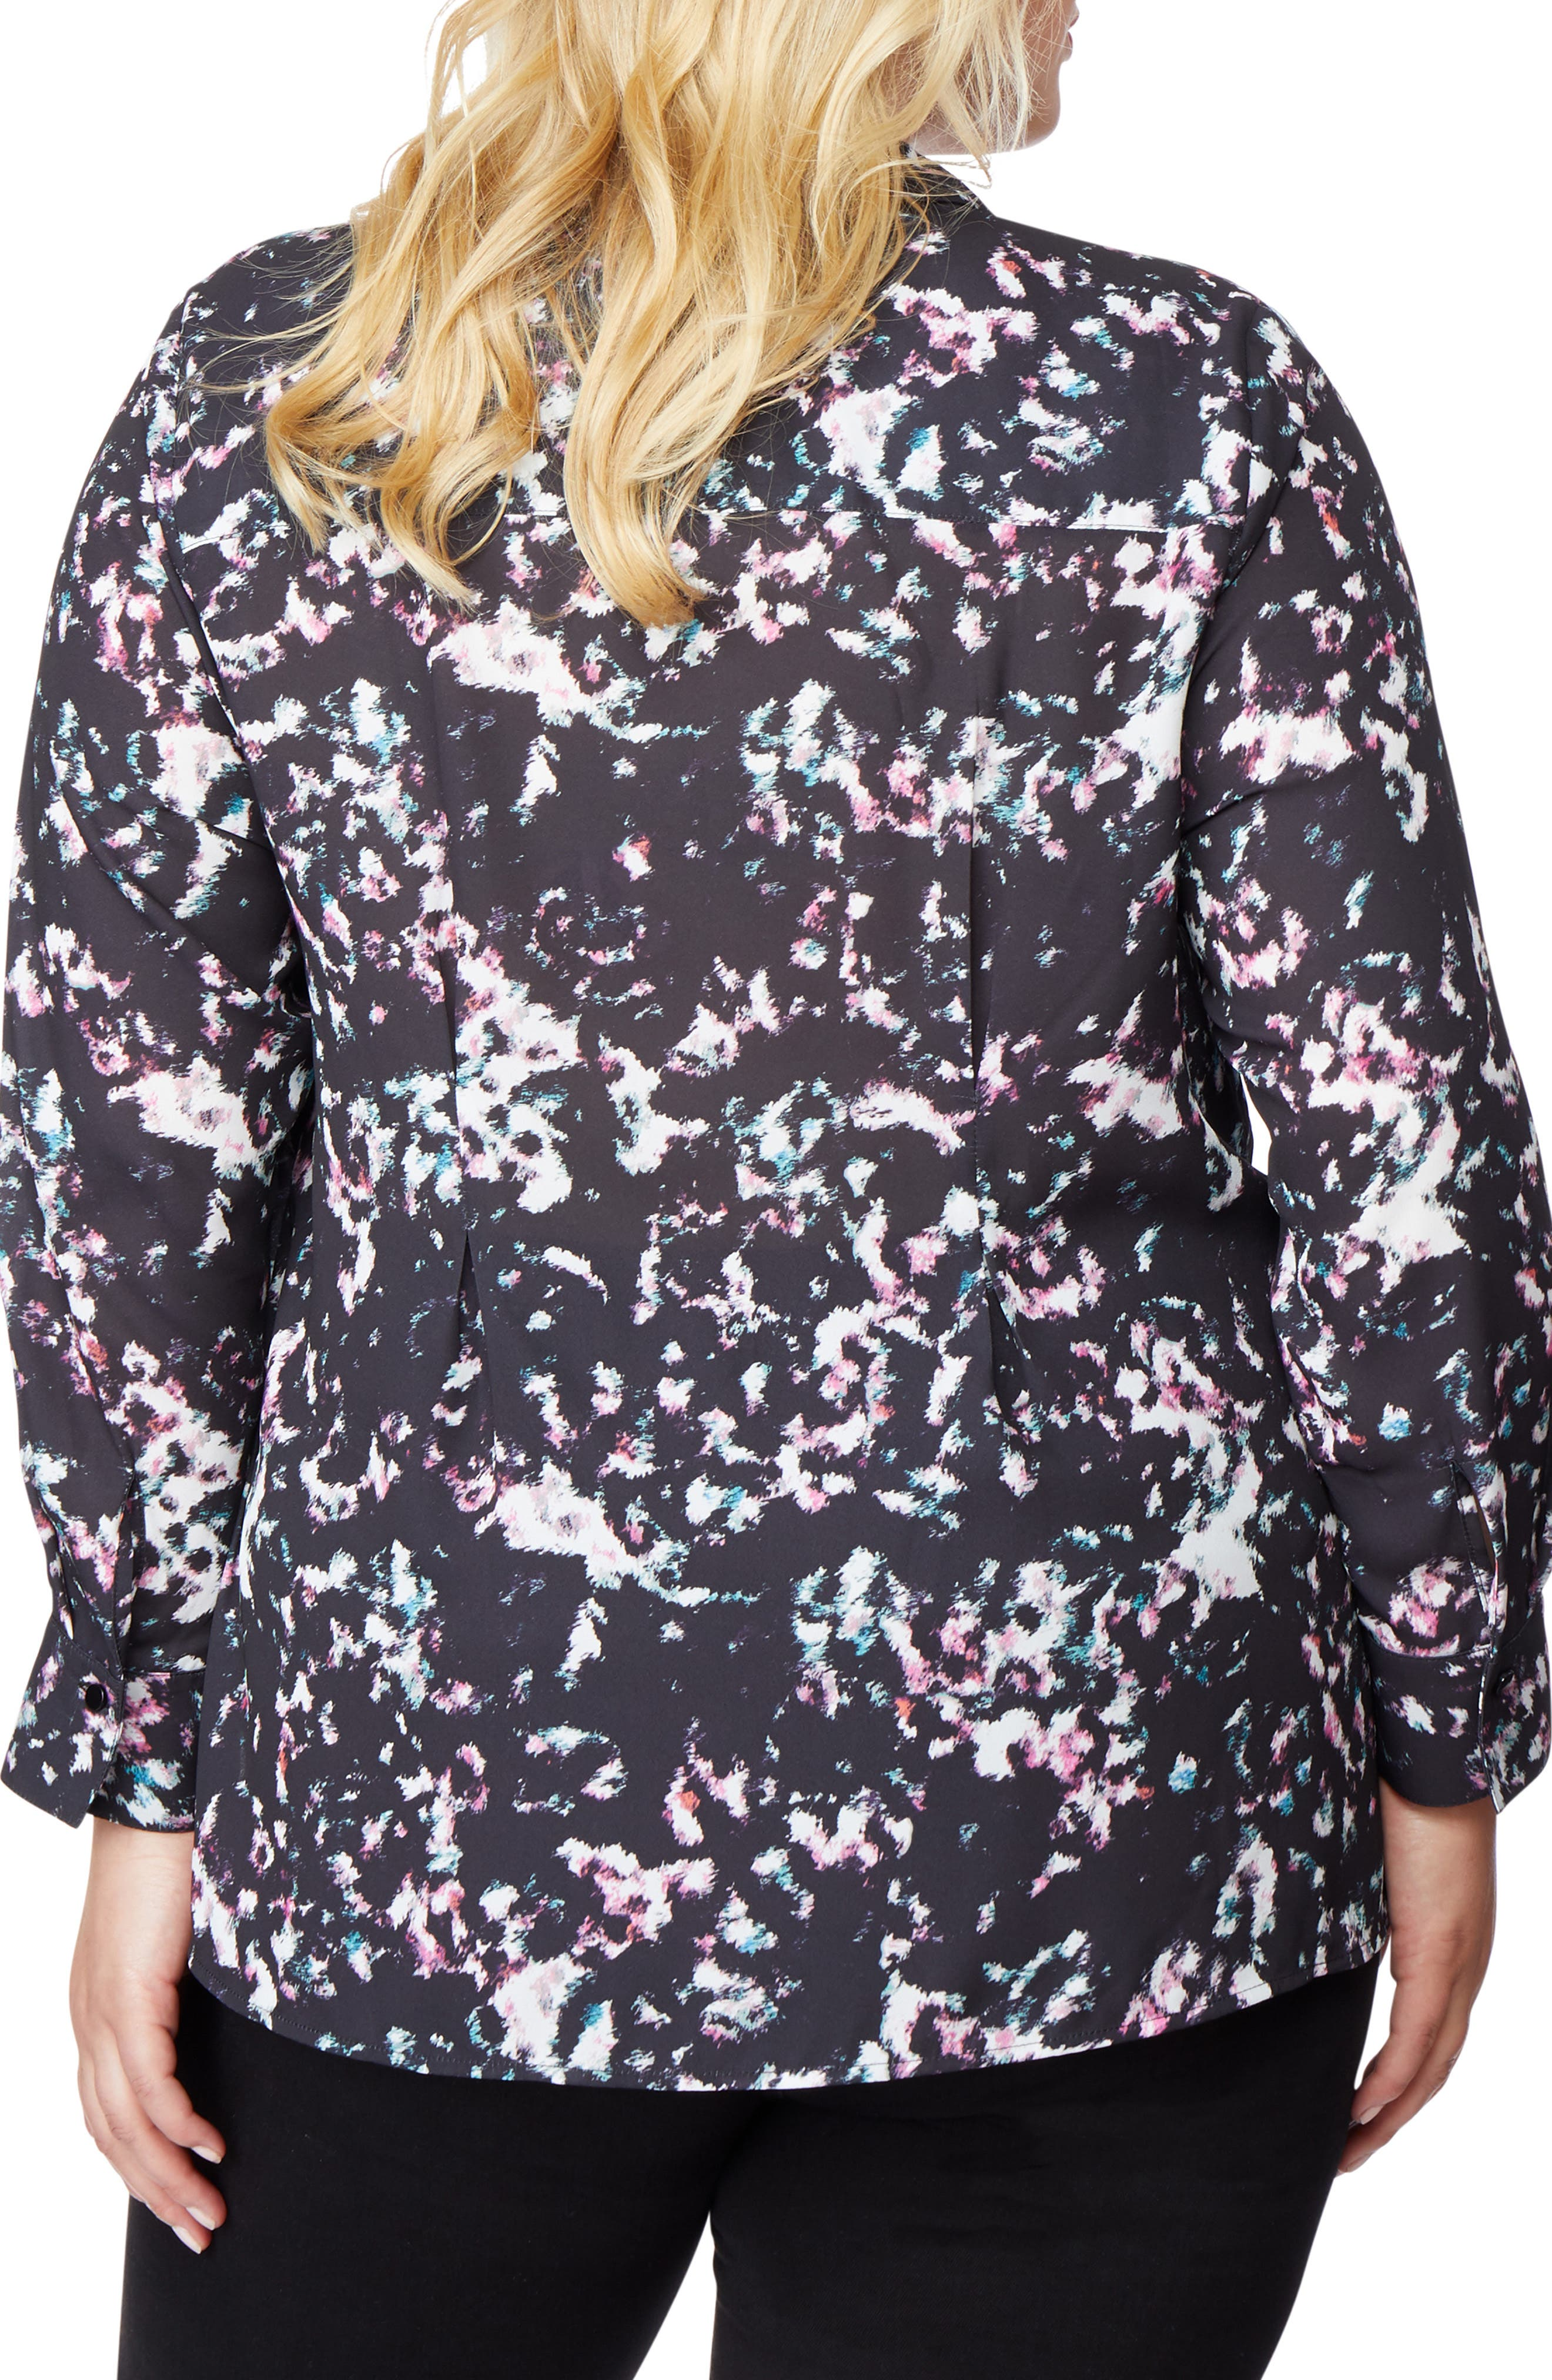 REBEL WILSON X ANGELS,                             Print Blouse,                             Alternate thumbnail 2, color,                             001